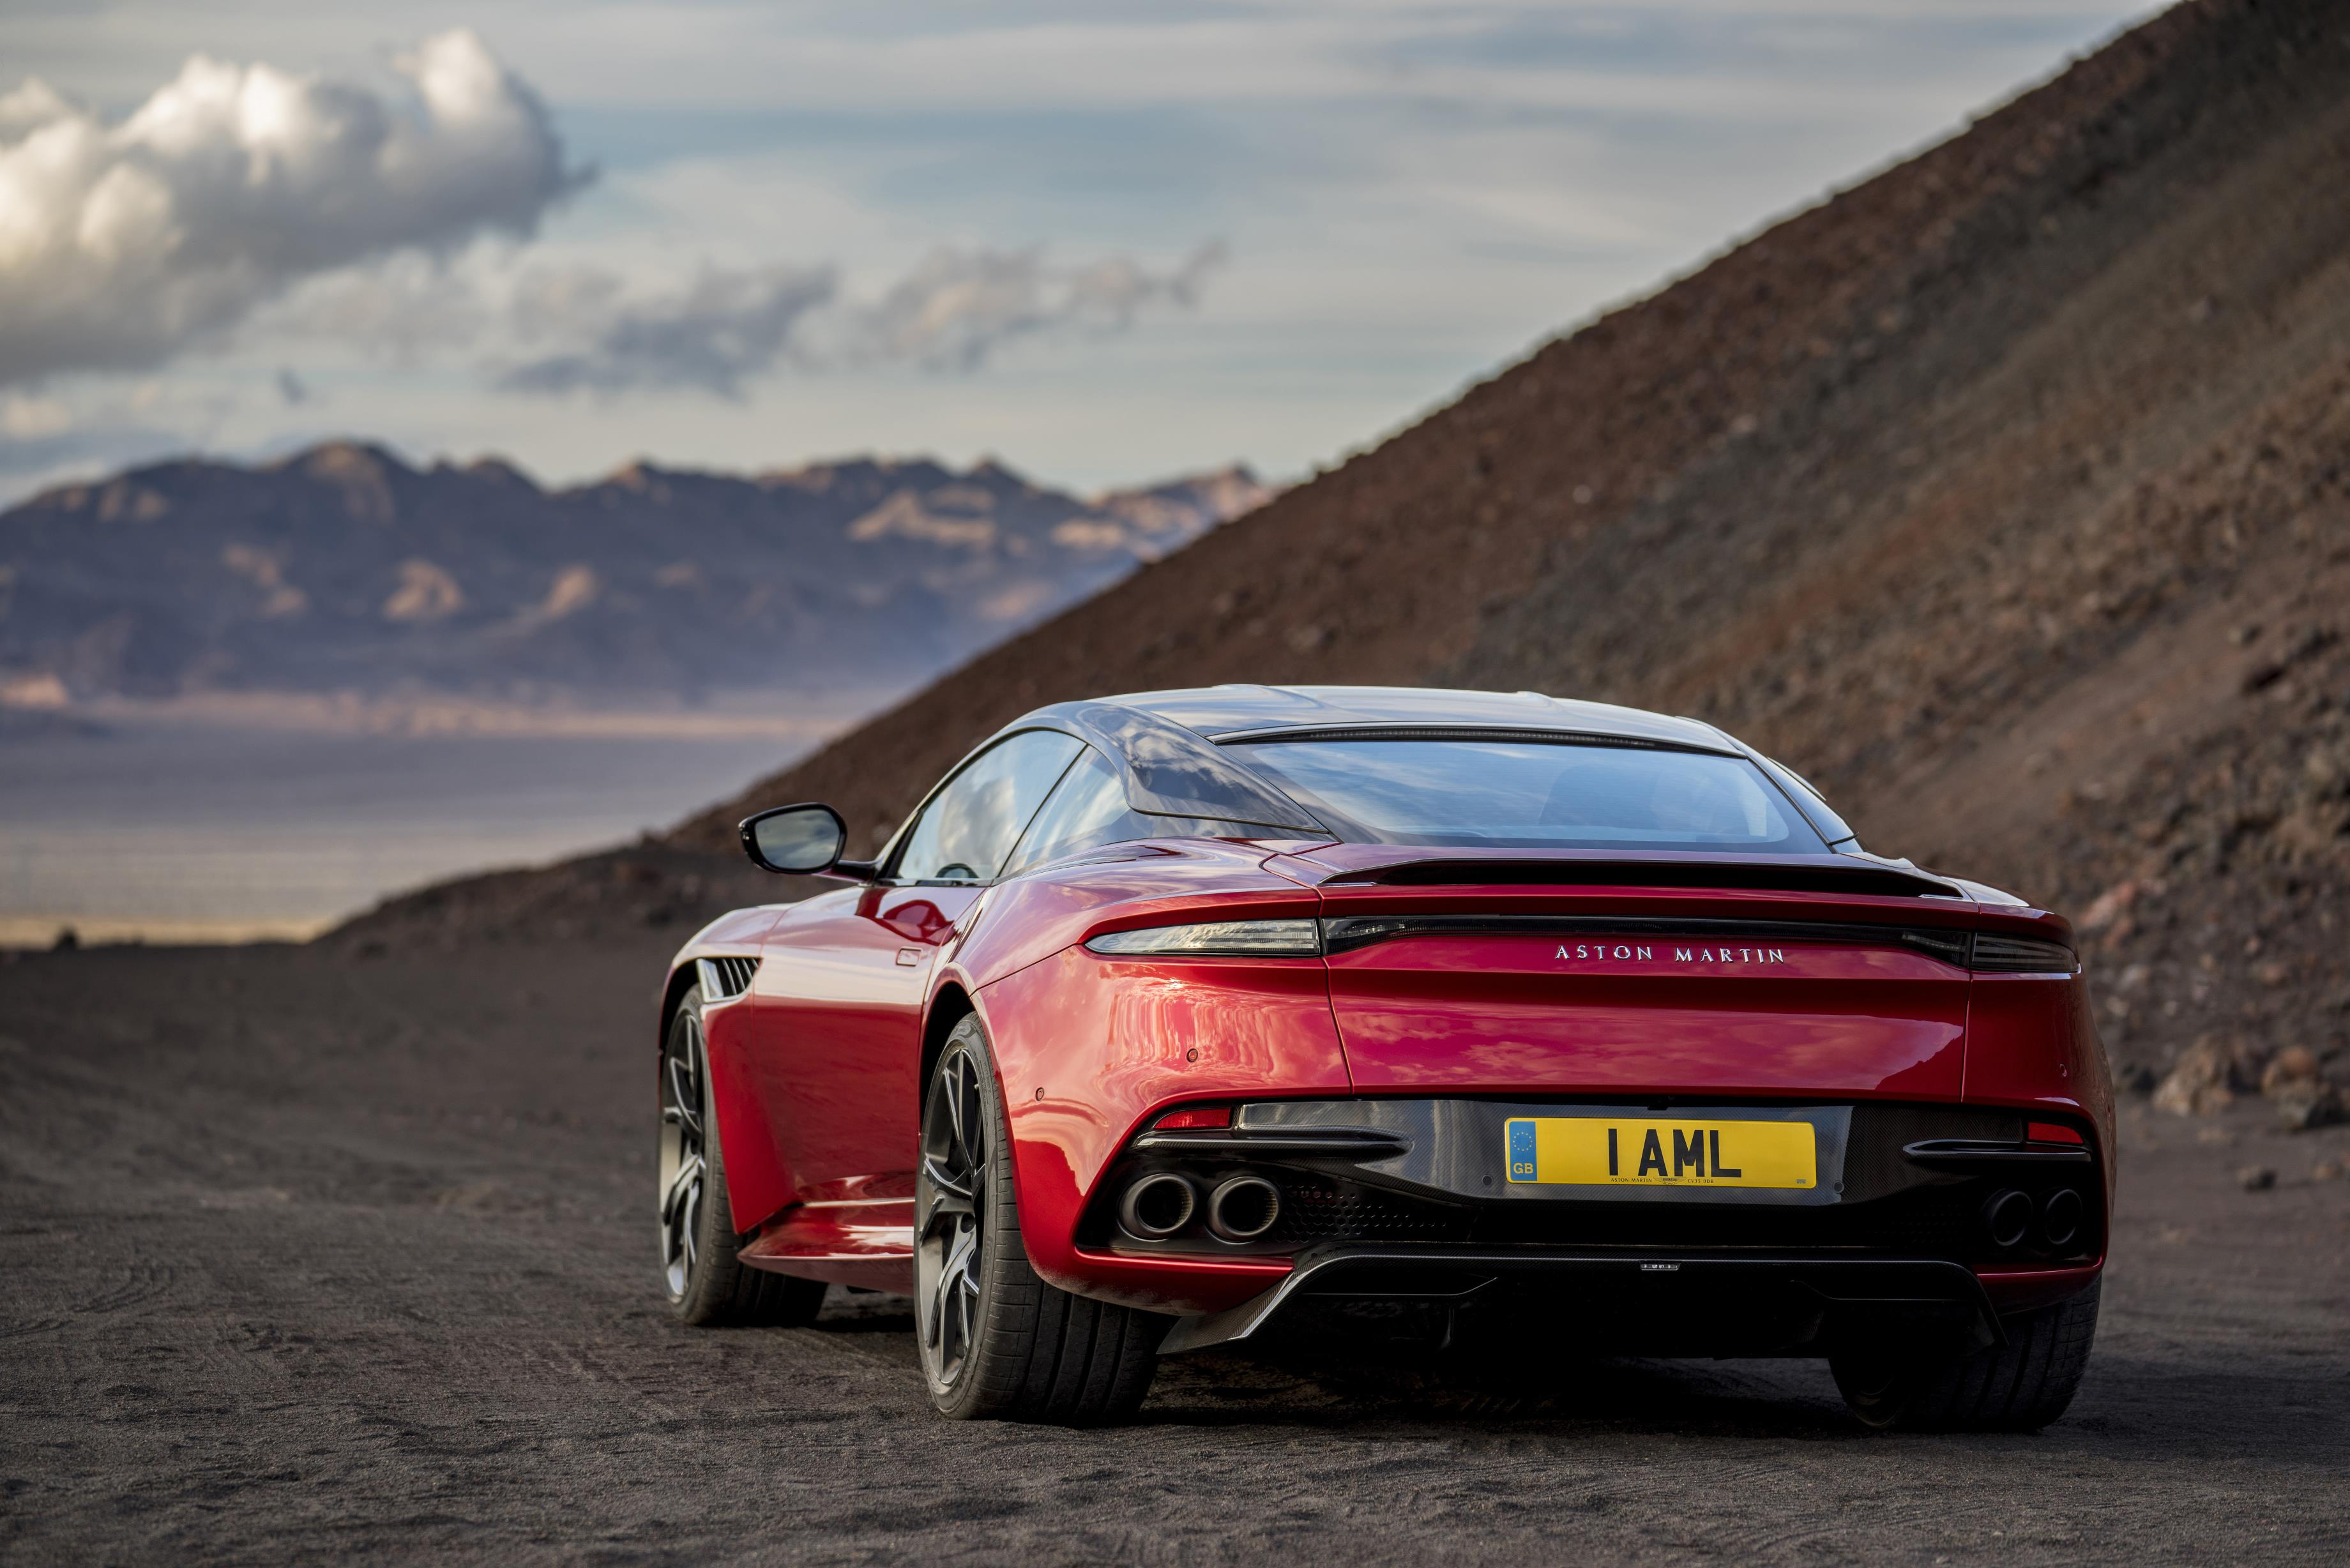 The British marque's magnificent new flagship coupe, DBS Superleggera, replaces the esteemed Vanquish S.